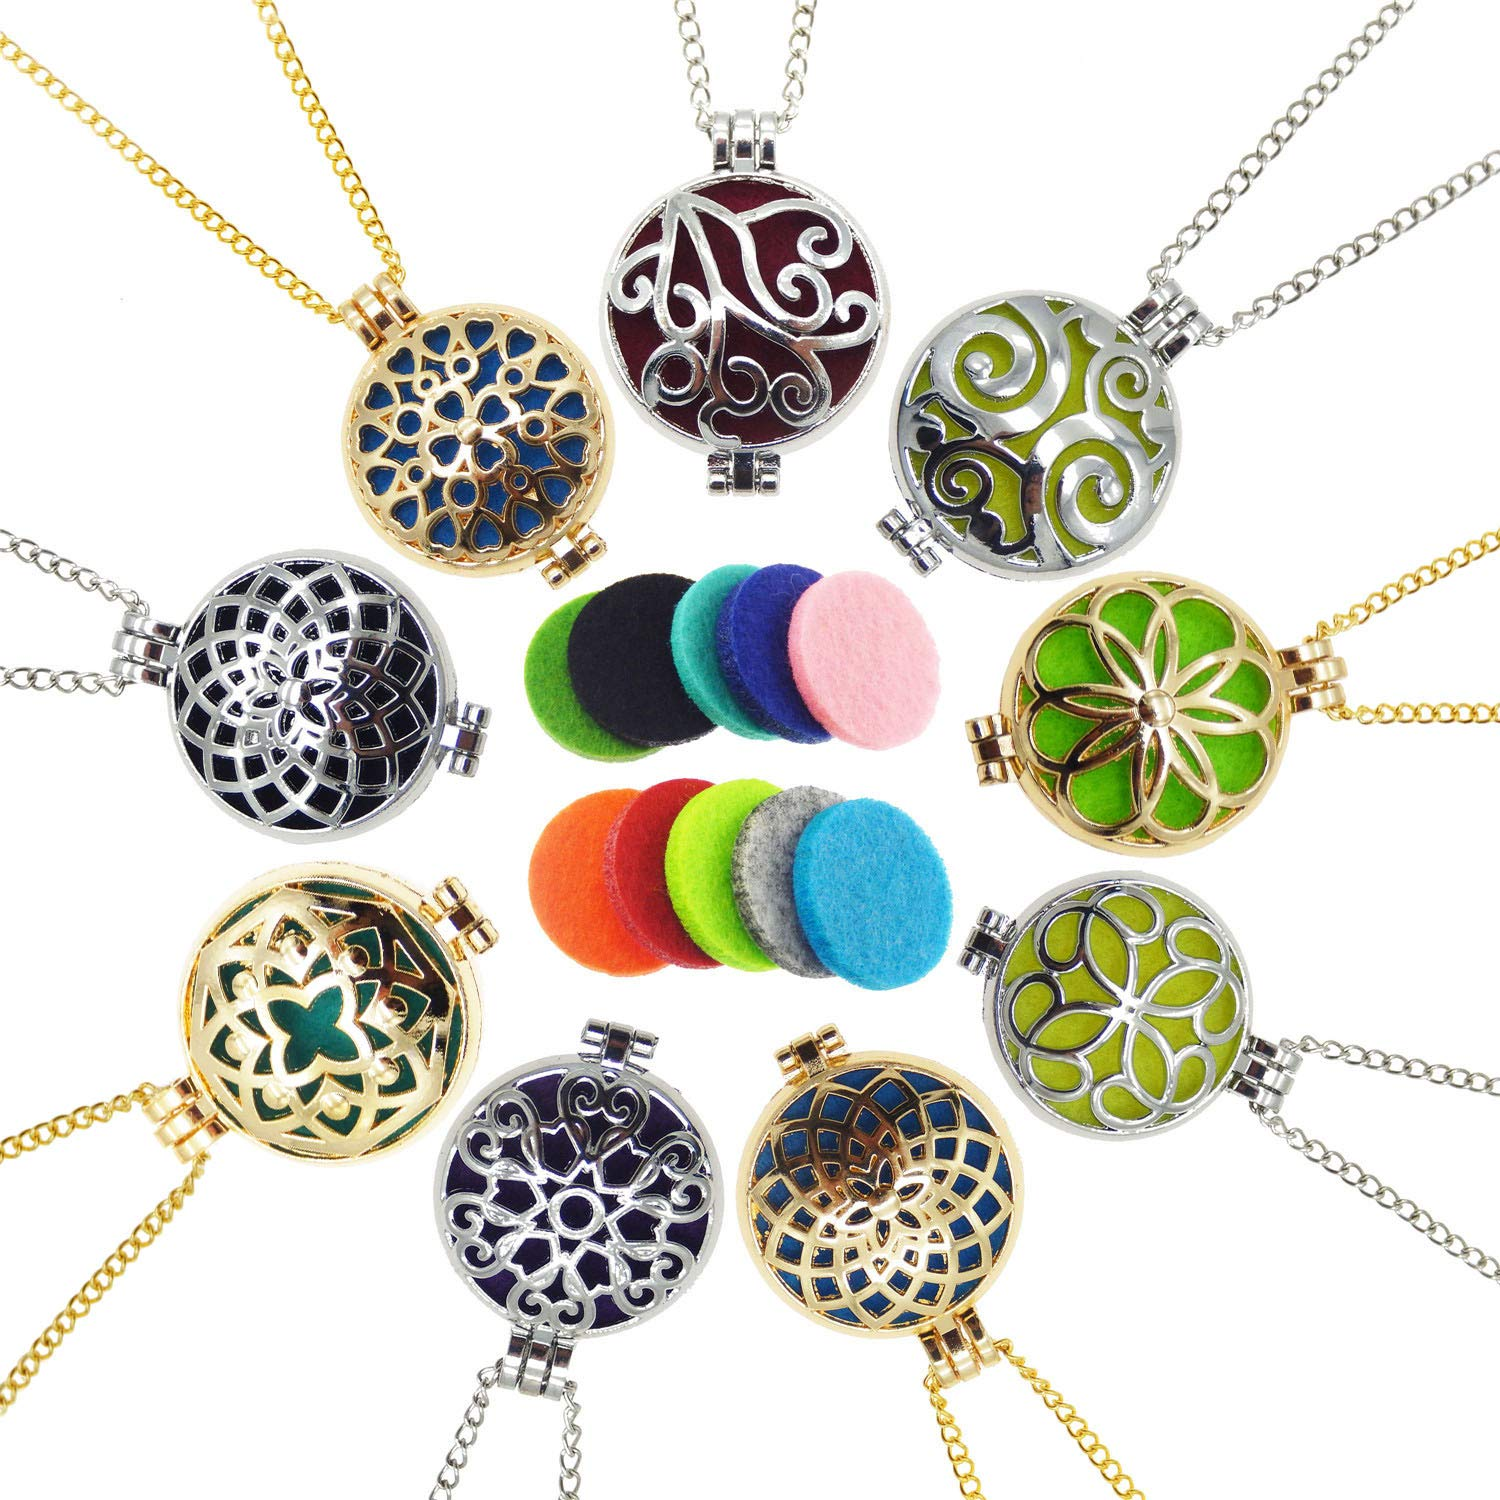 Julie Wang Bulk Sale 9pcs Aromatherapy Enssential Oil Diffuser Necklace Locket Pendants Gift GR-754-B